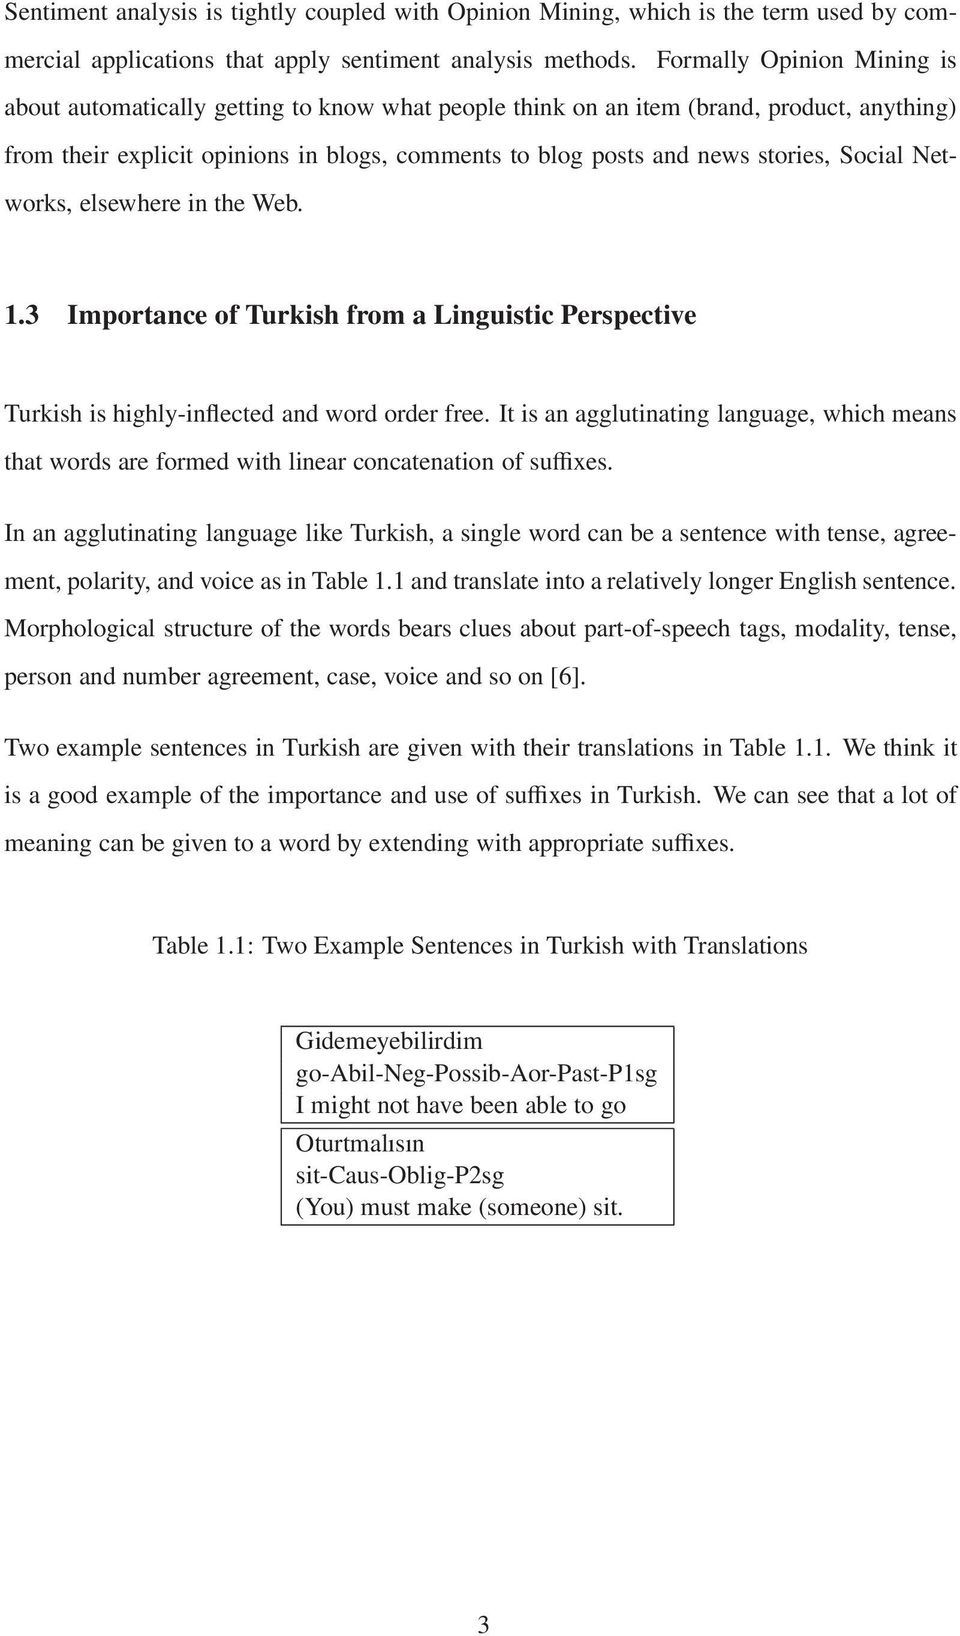 Social Networks, elsewhere in the Web. 1.3 Importance of Turkish from a Linguistic Perspective Turkish is highly-inflected and word order free.